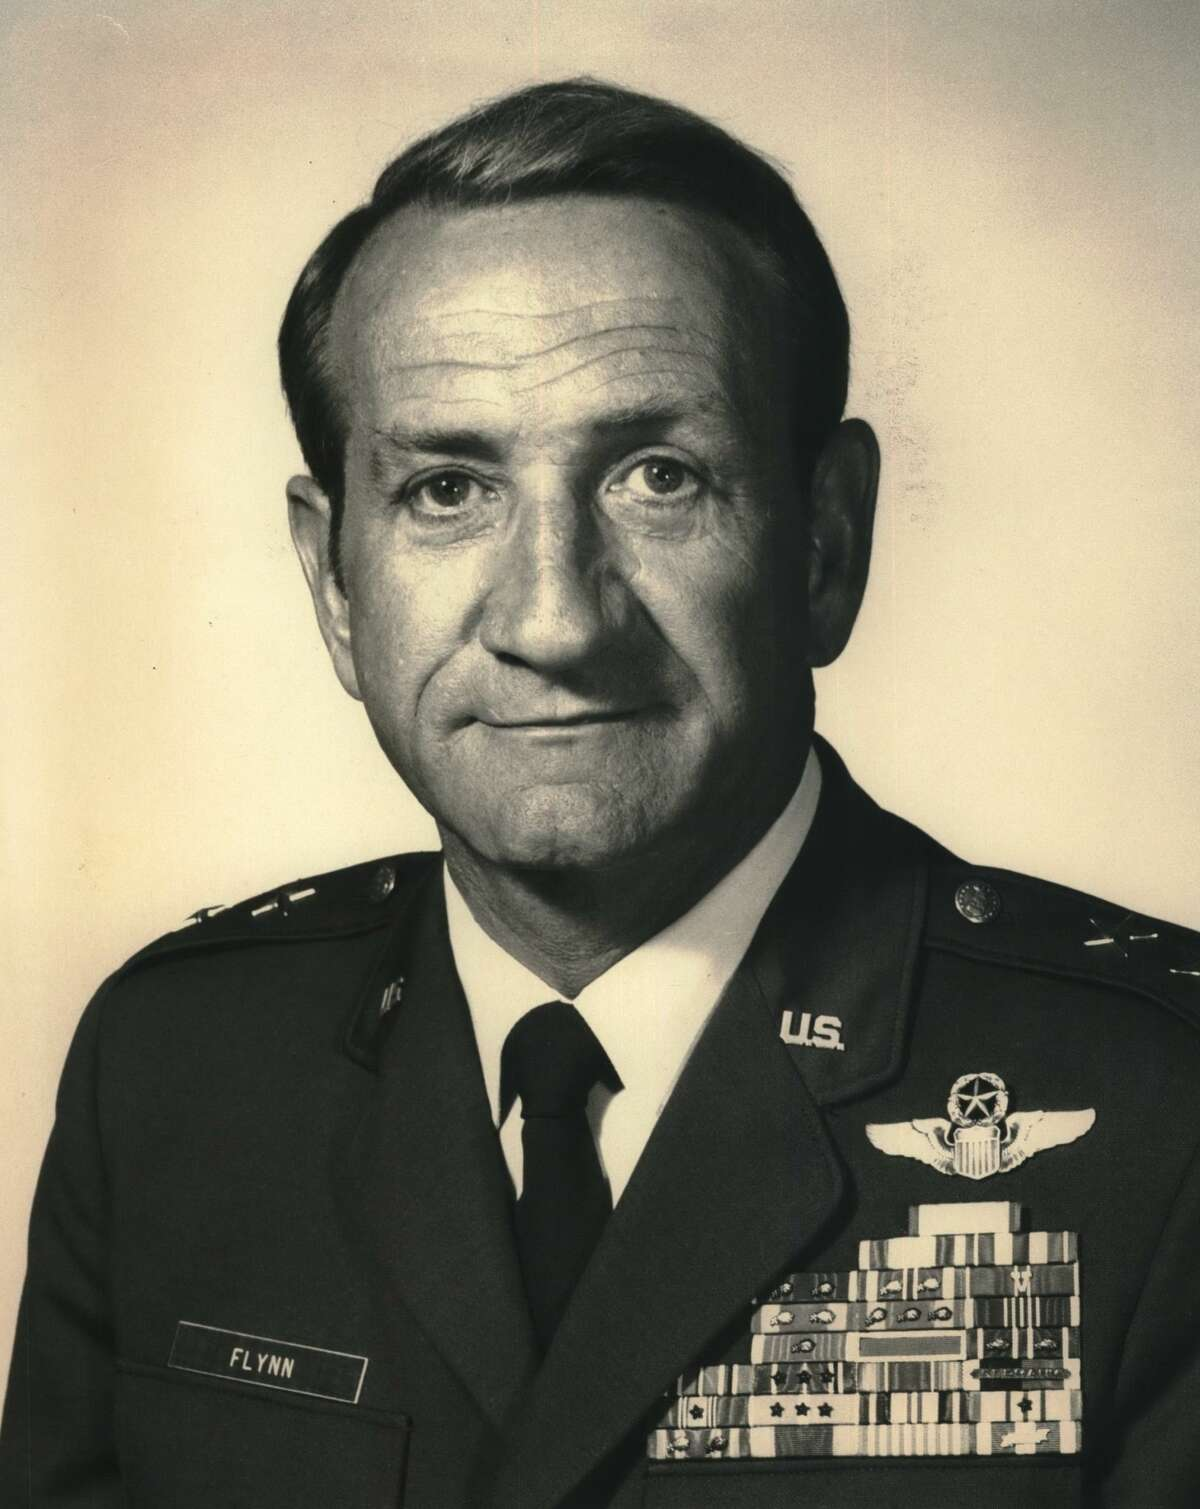 Flynn was the highest-ranking POW held by the North Vietnamese.